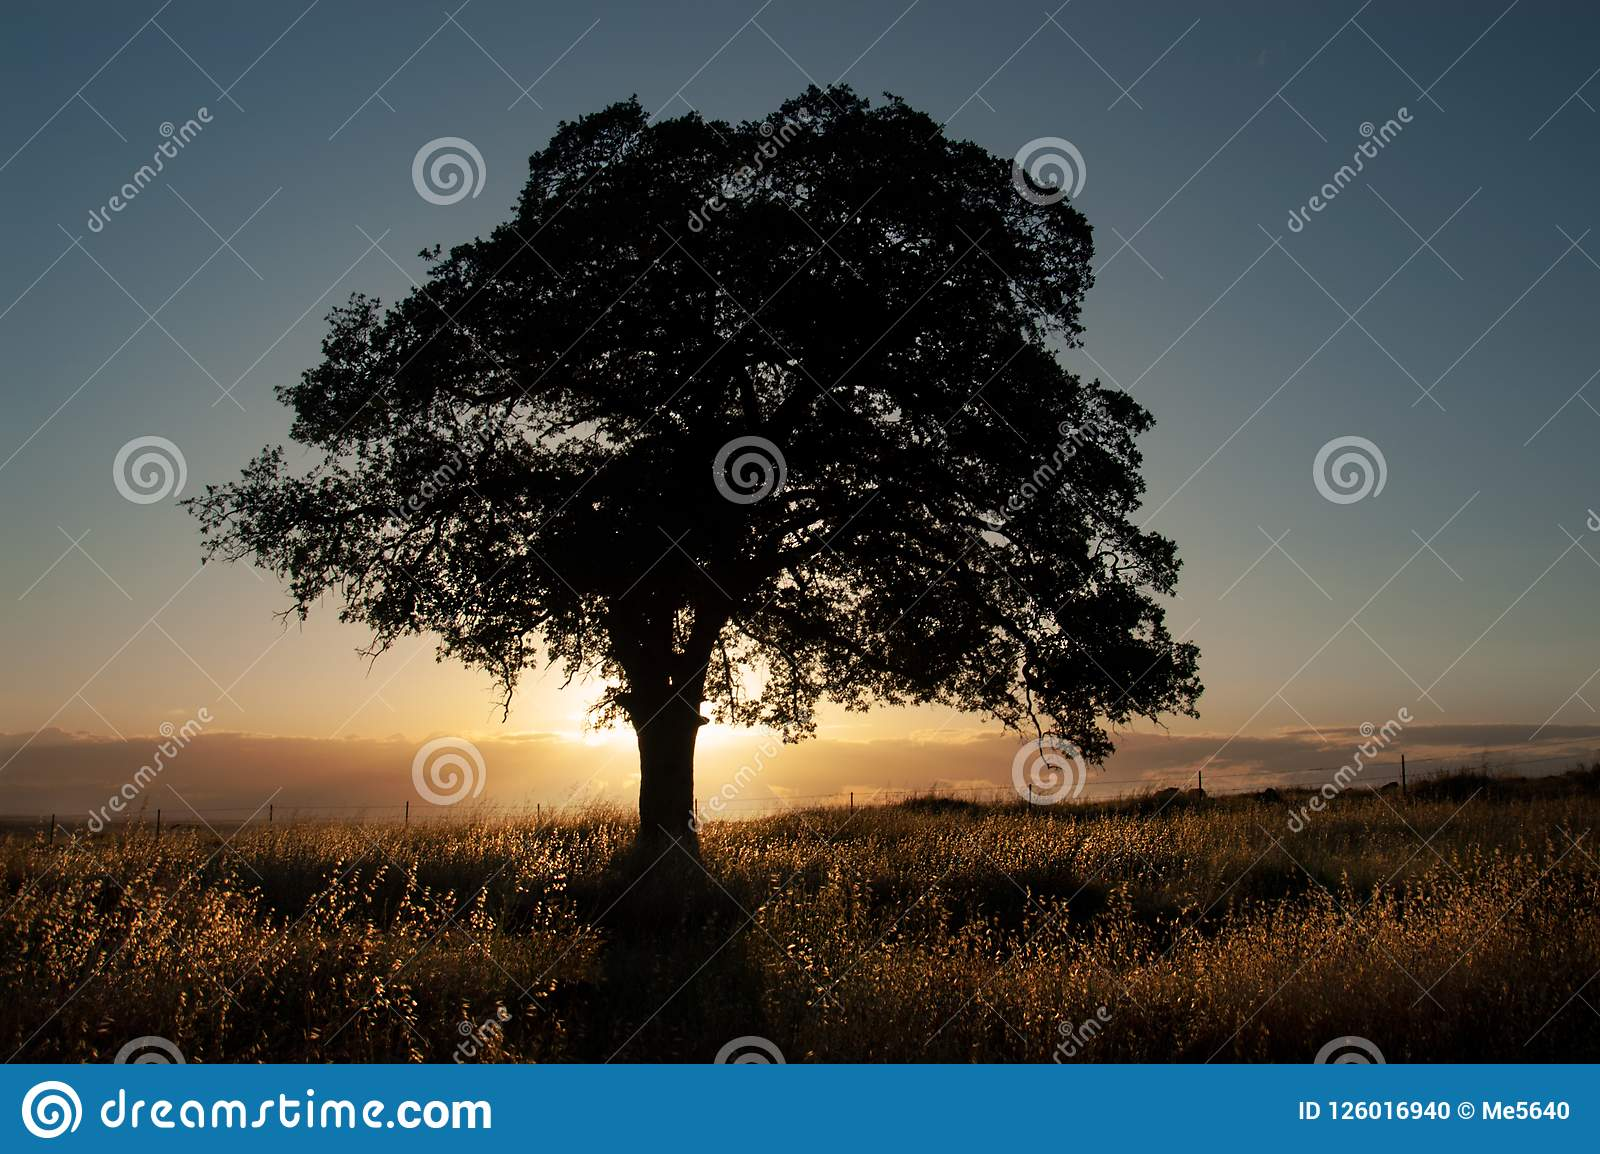 A live oak is silhouetted in front of the golden light of sunset.